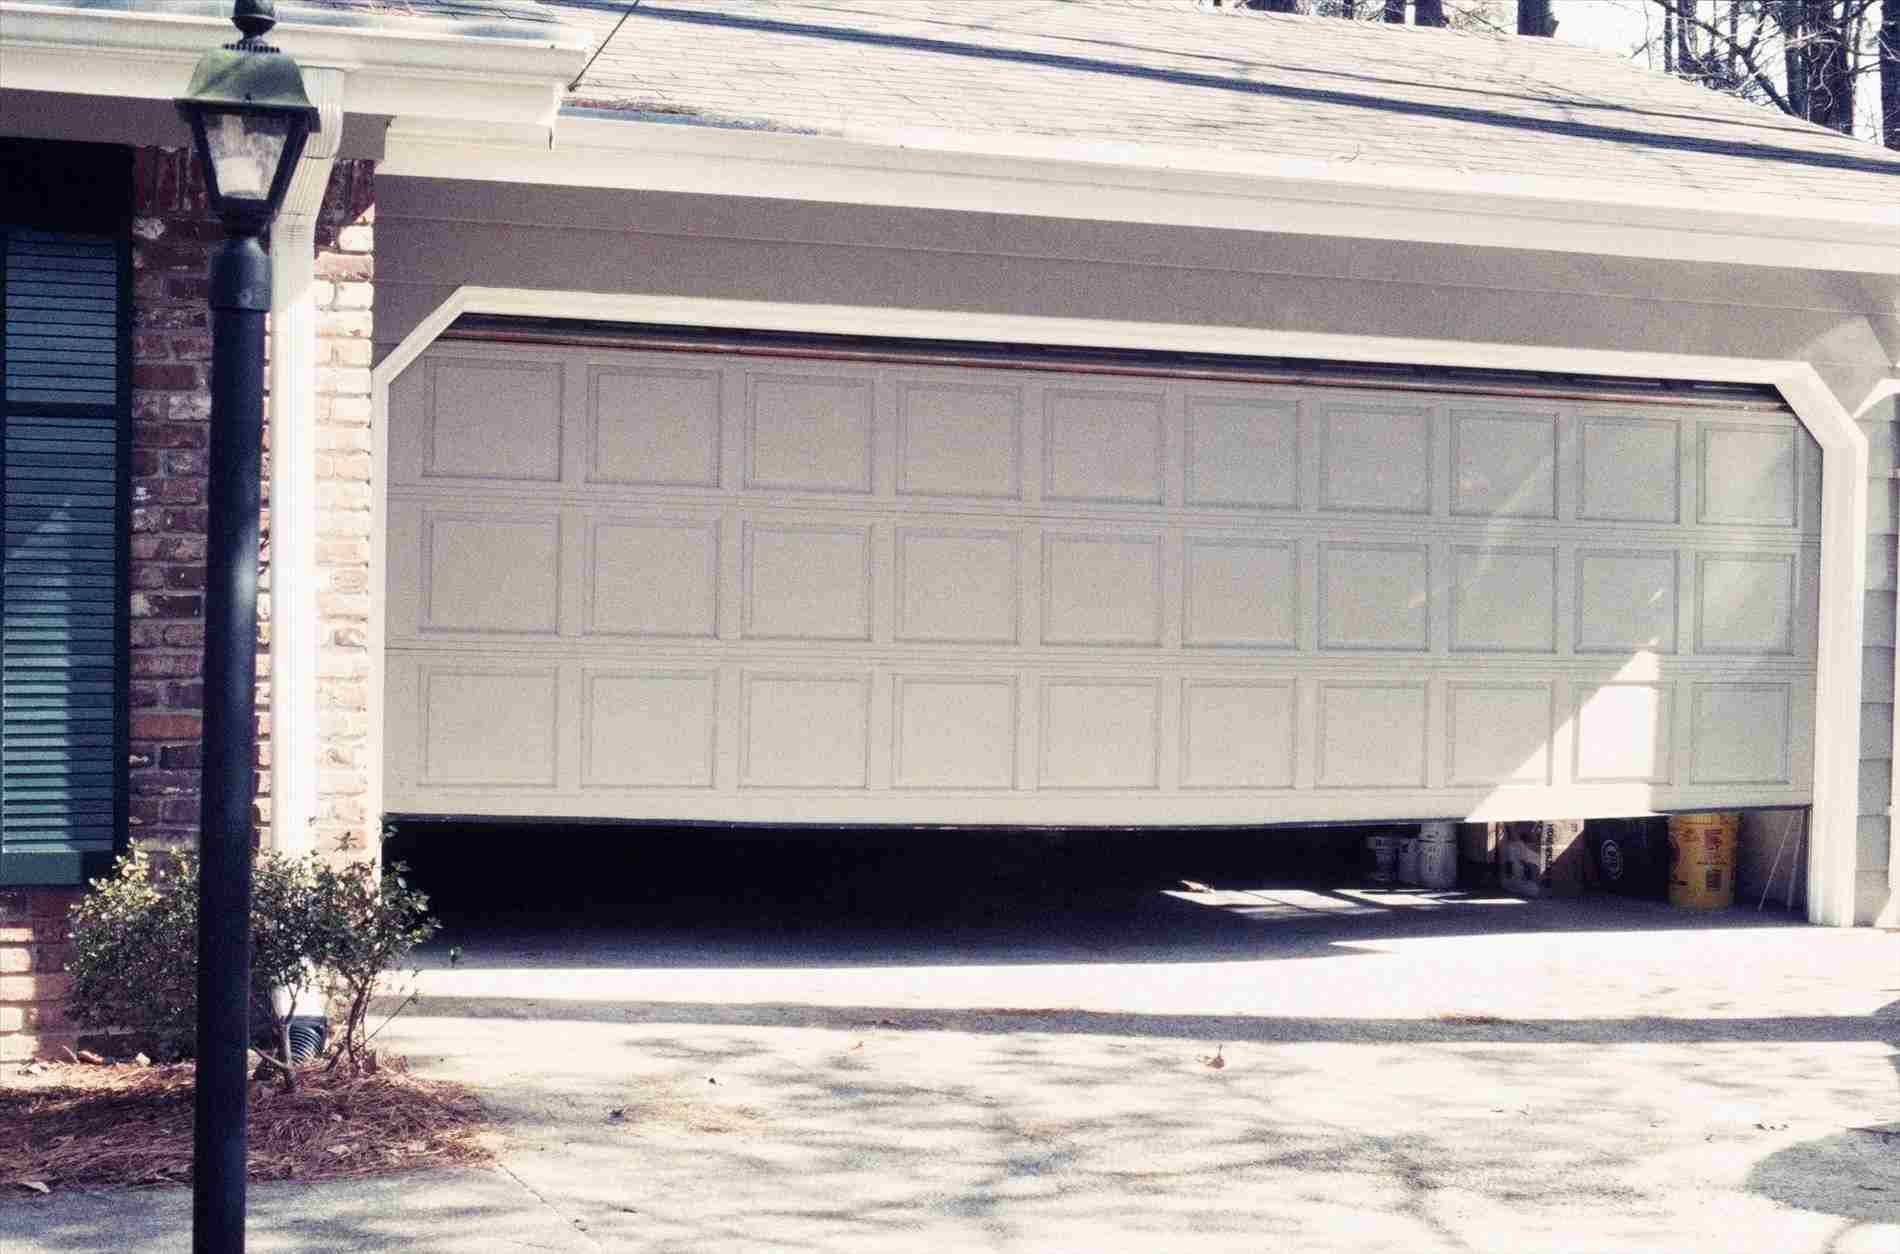 17 Foot Garage Door Classic Steel Garage Doors High Lift Double Door Replace A Garage Door Extension Spri Garage Door Styles Garage Doors Garage Door Sizes